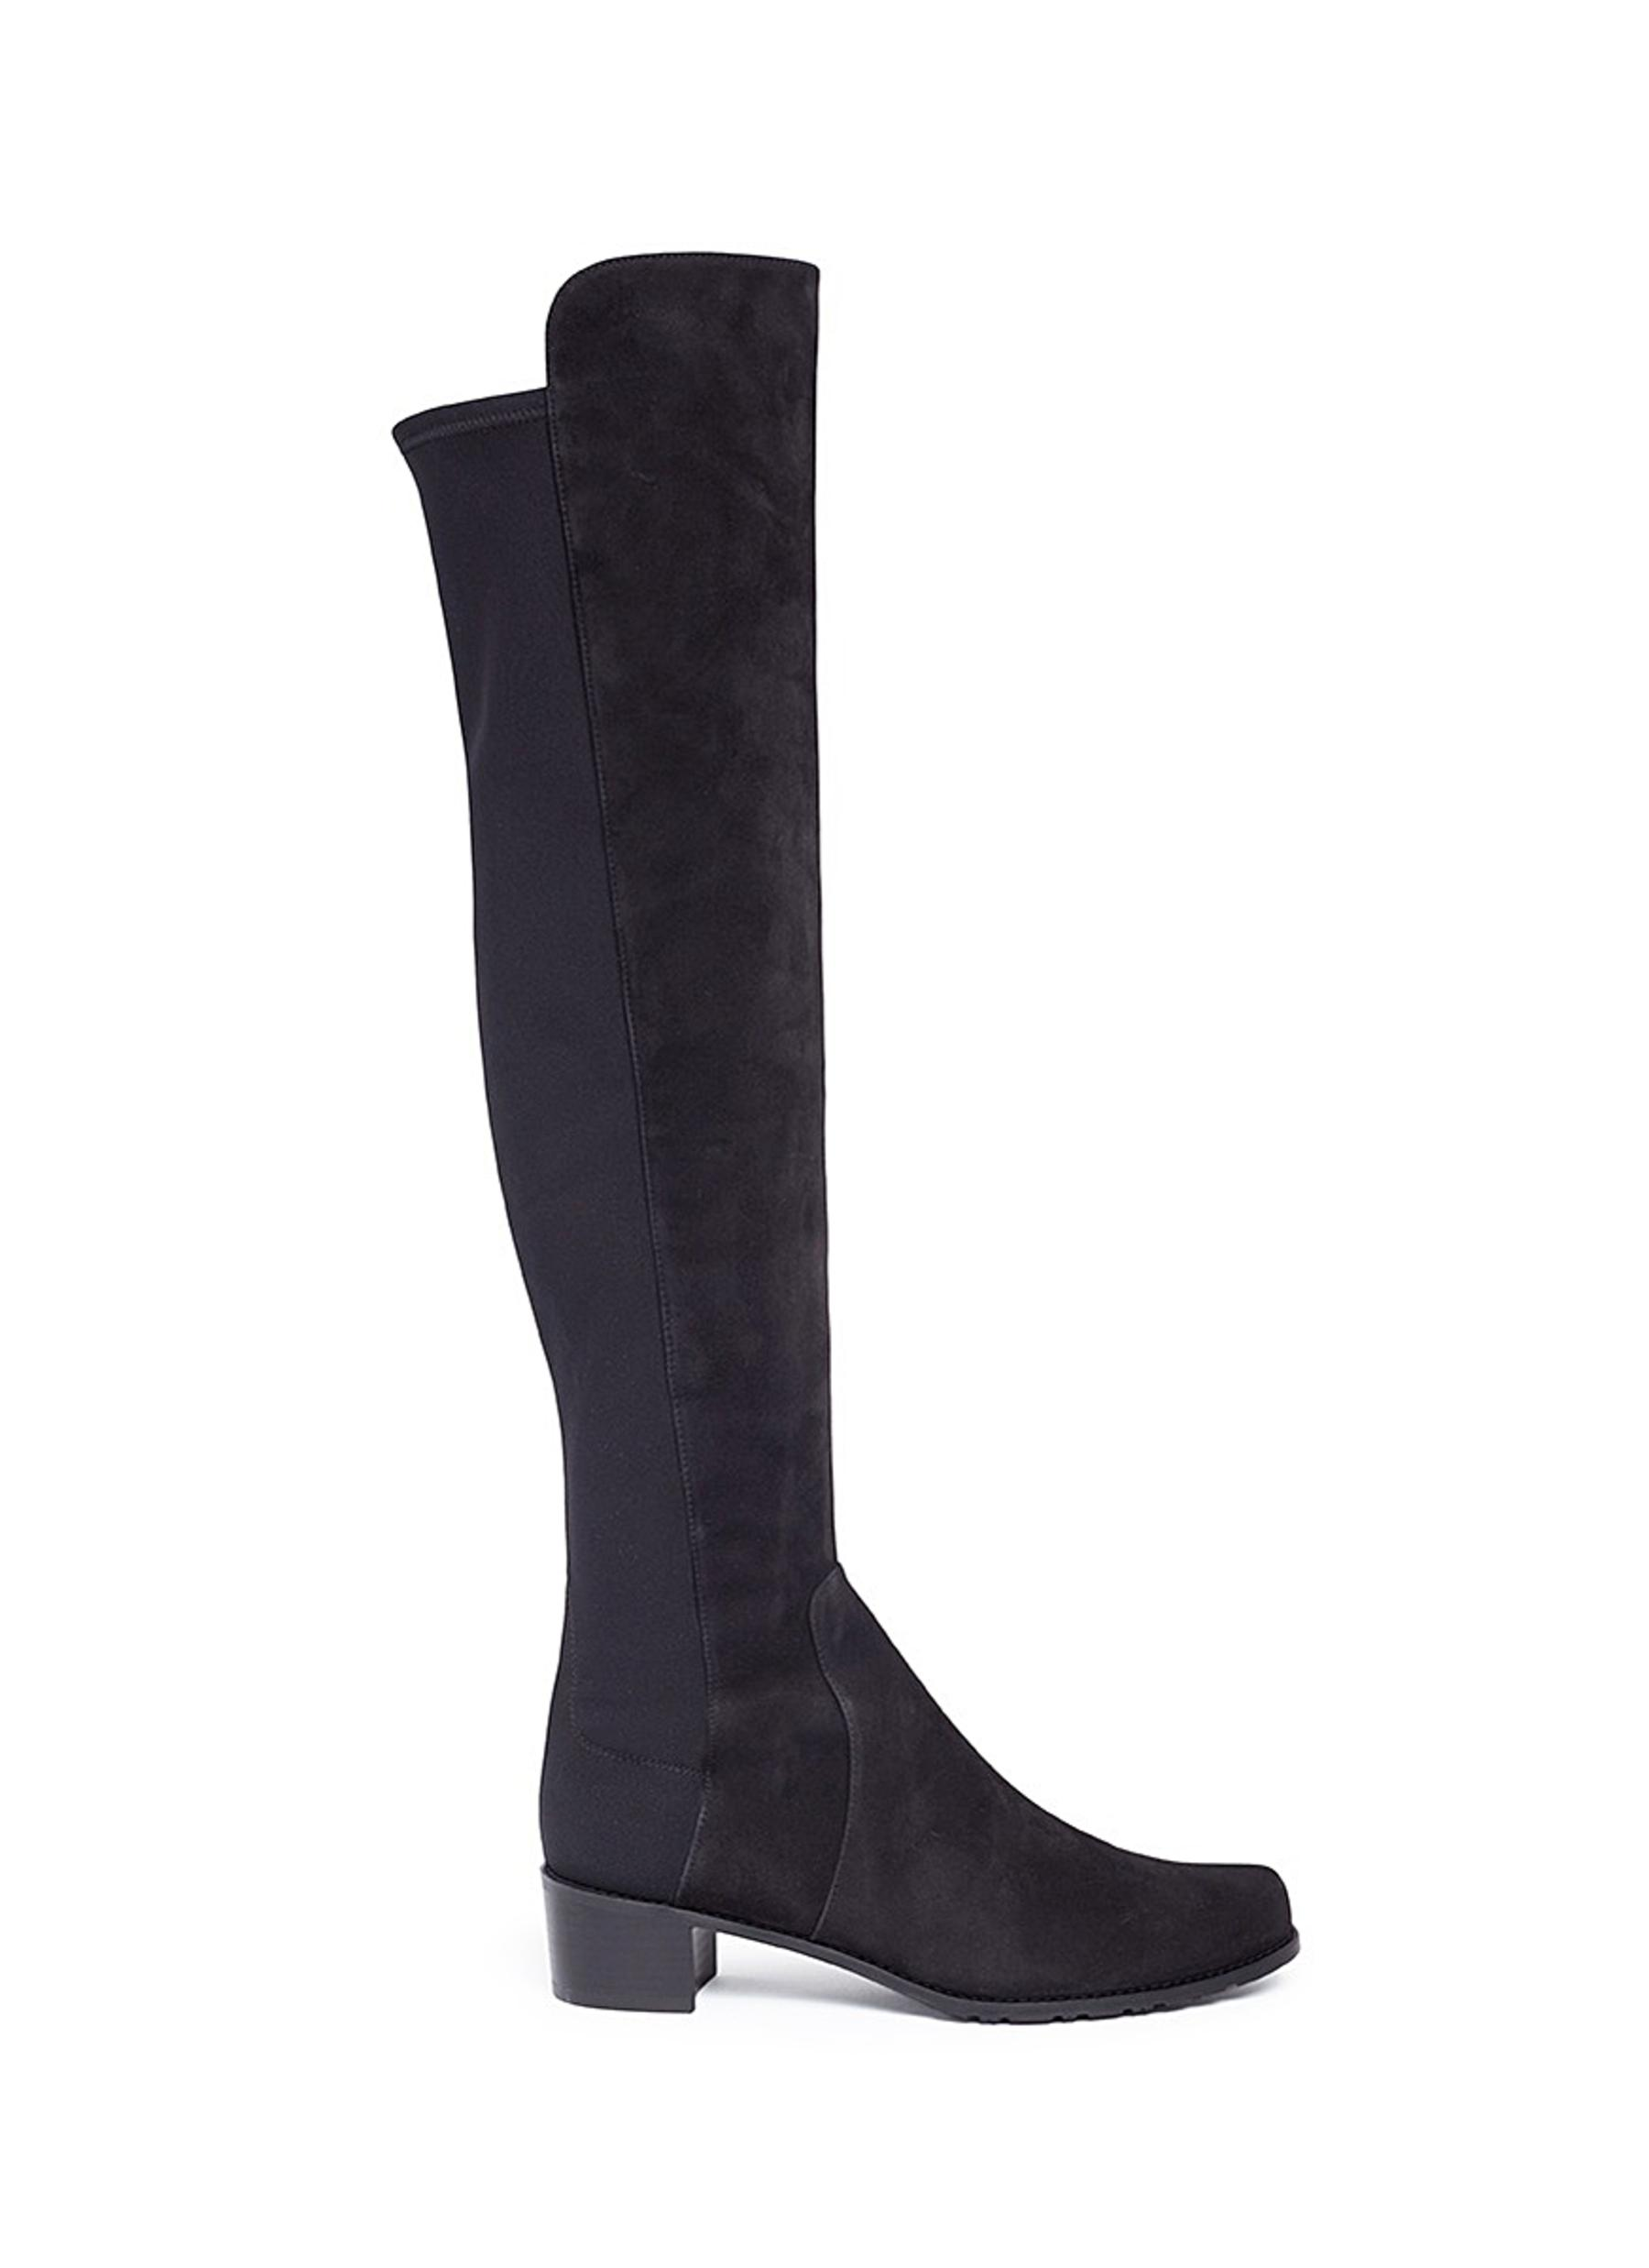 Stuart Weitzman Boots Reserve stretch suede knee high boots